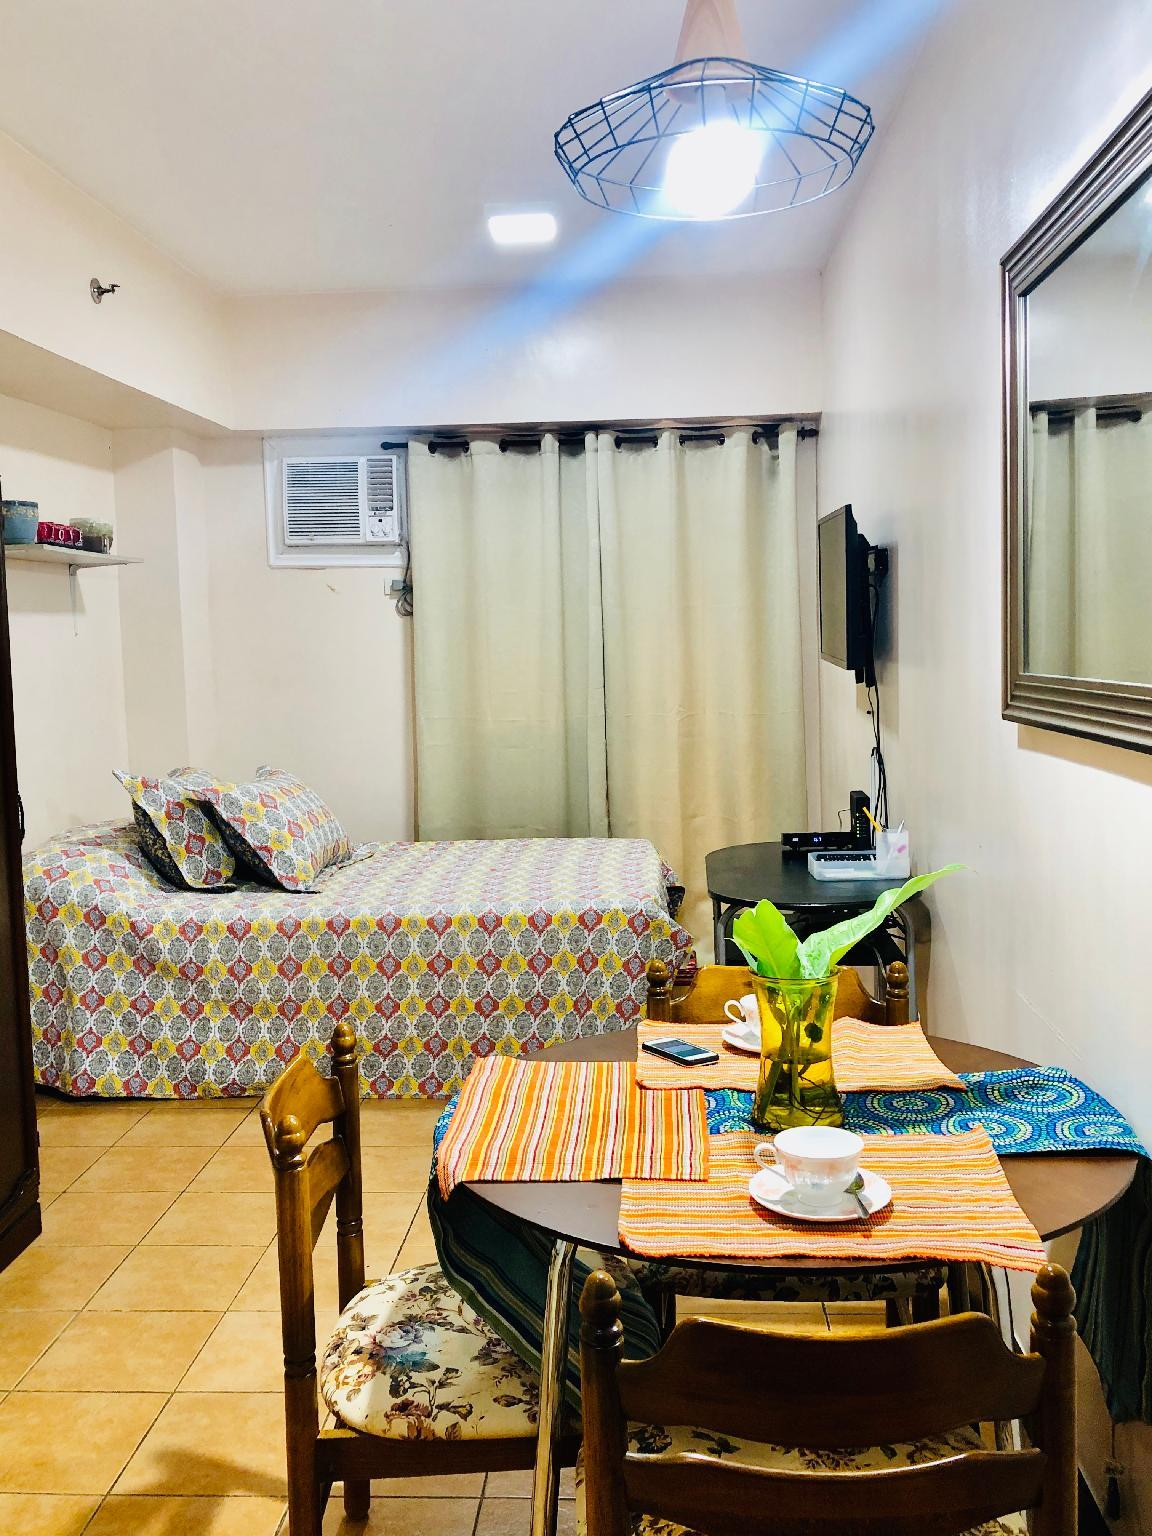 Condo Staycation 20mins To Airport